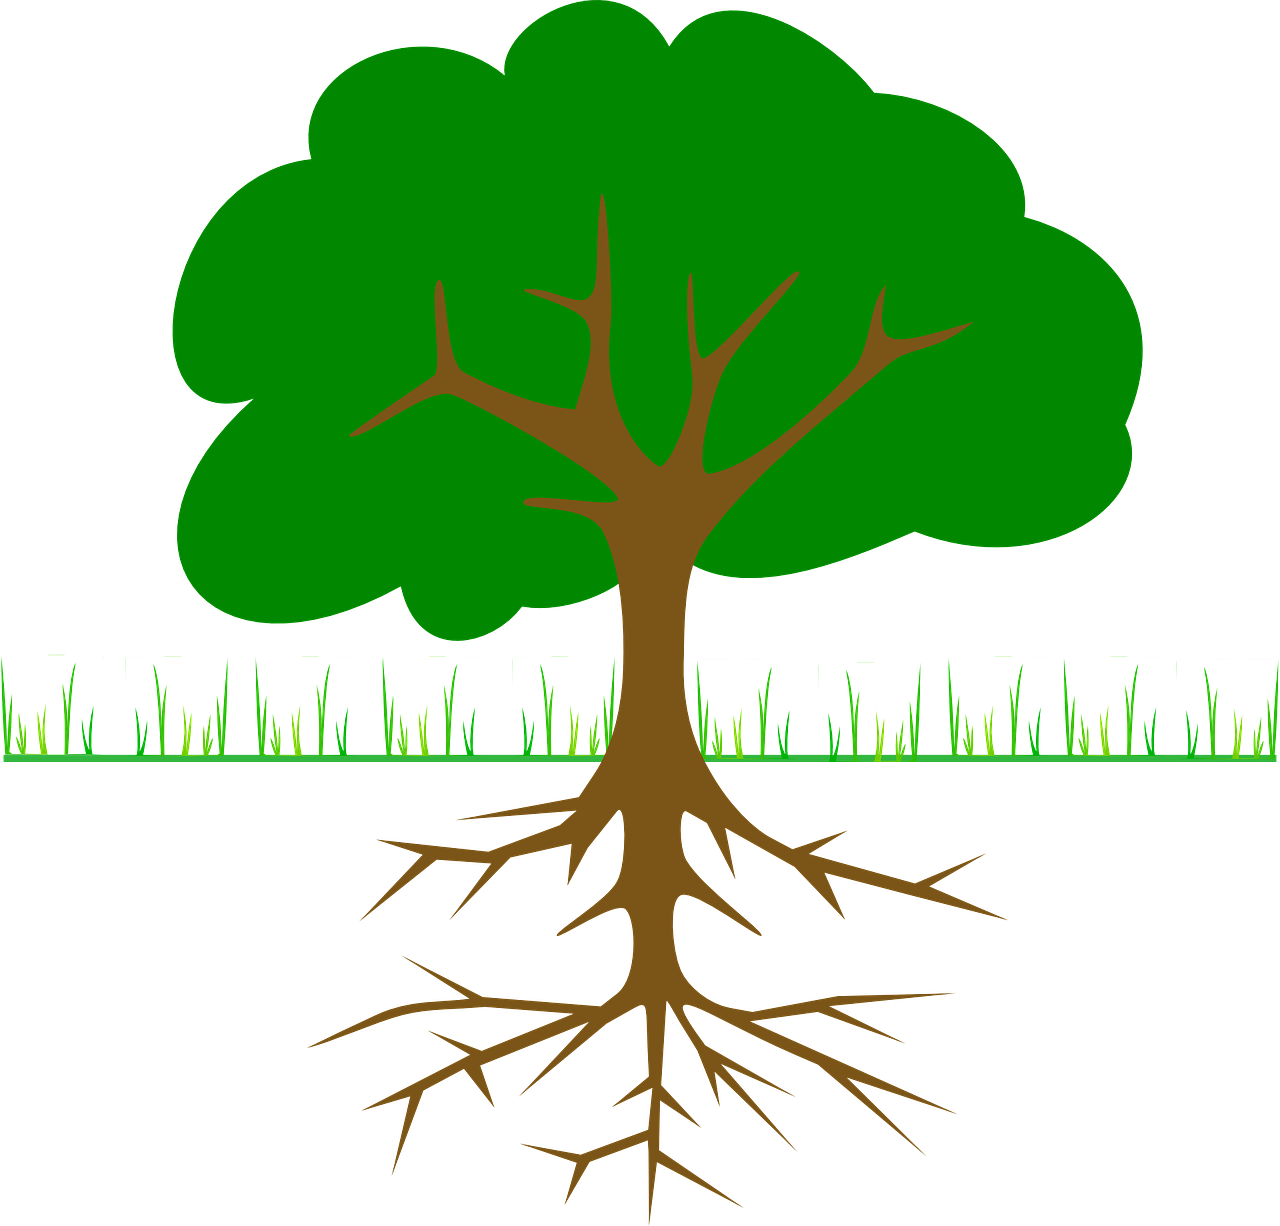 Star nursery blog one. Evaporation clipart soil